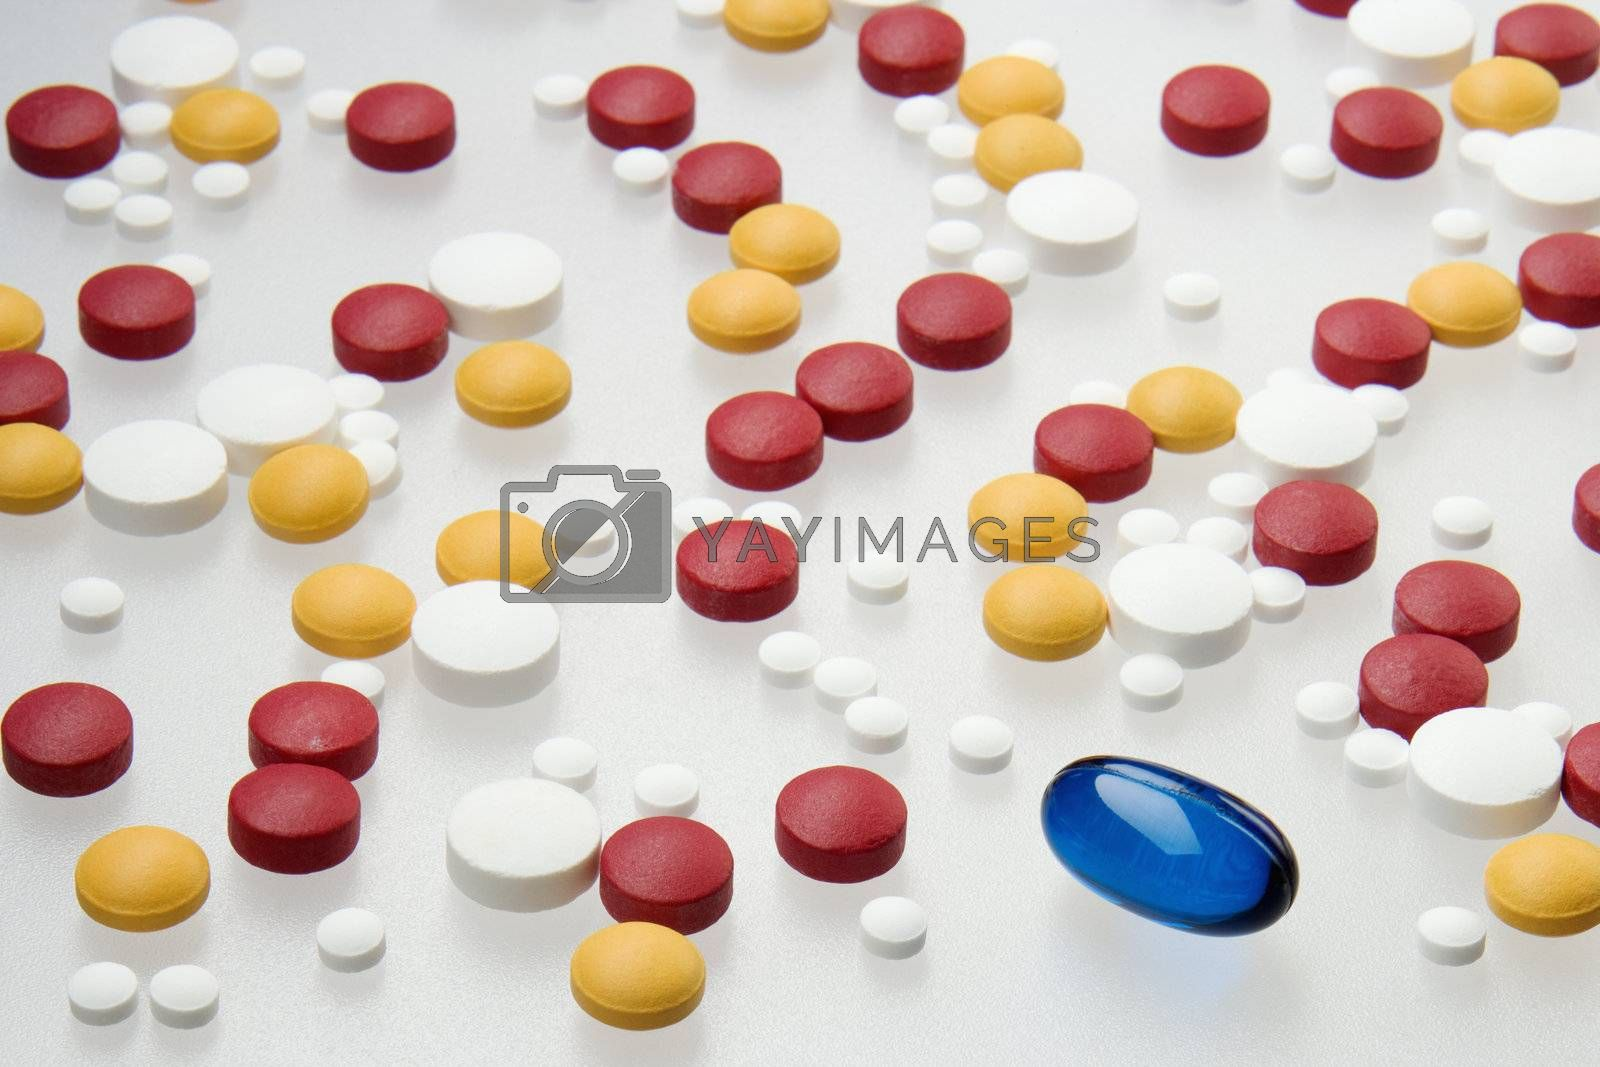 One large blue capsule among other smaller pills